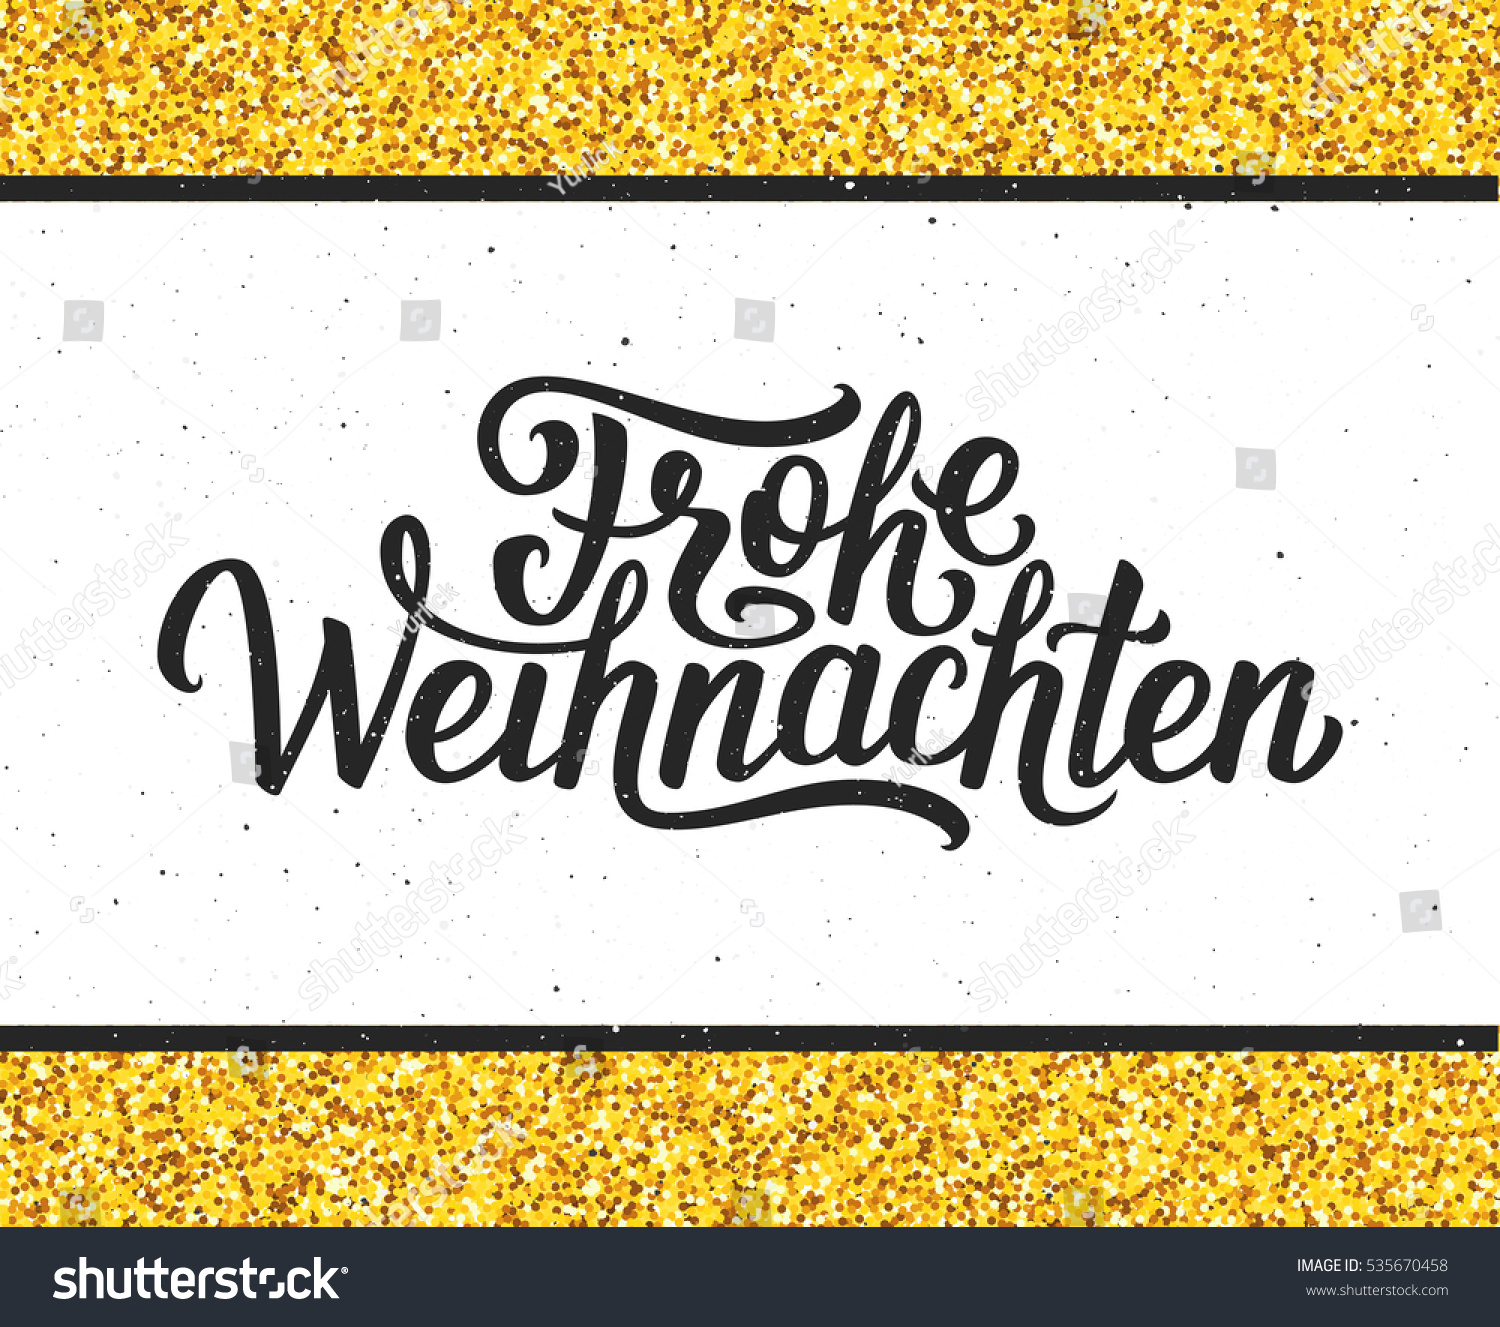 Royalty Free Stock Illustration of Frohe Weihnachten Calligraphic ...